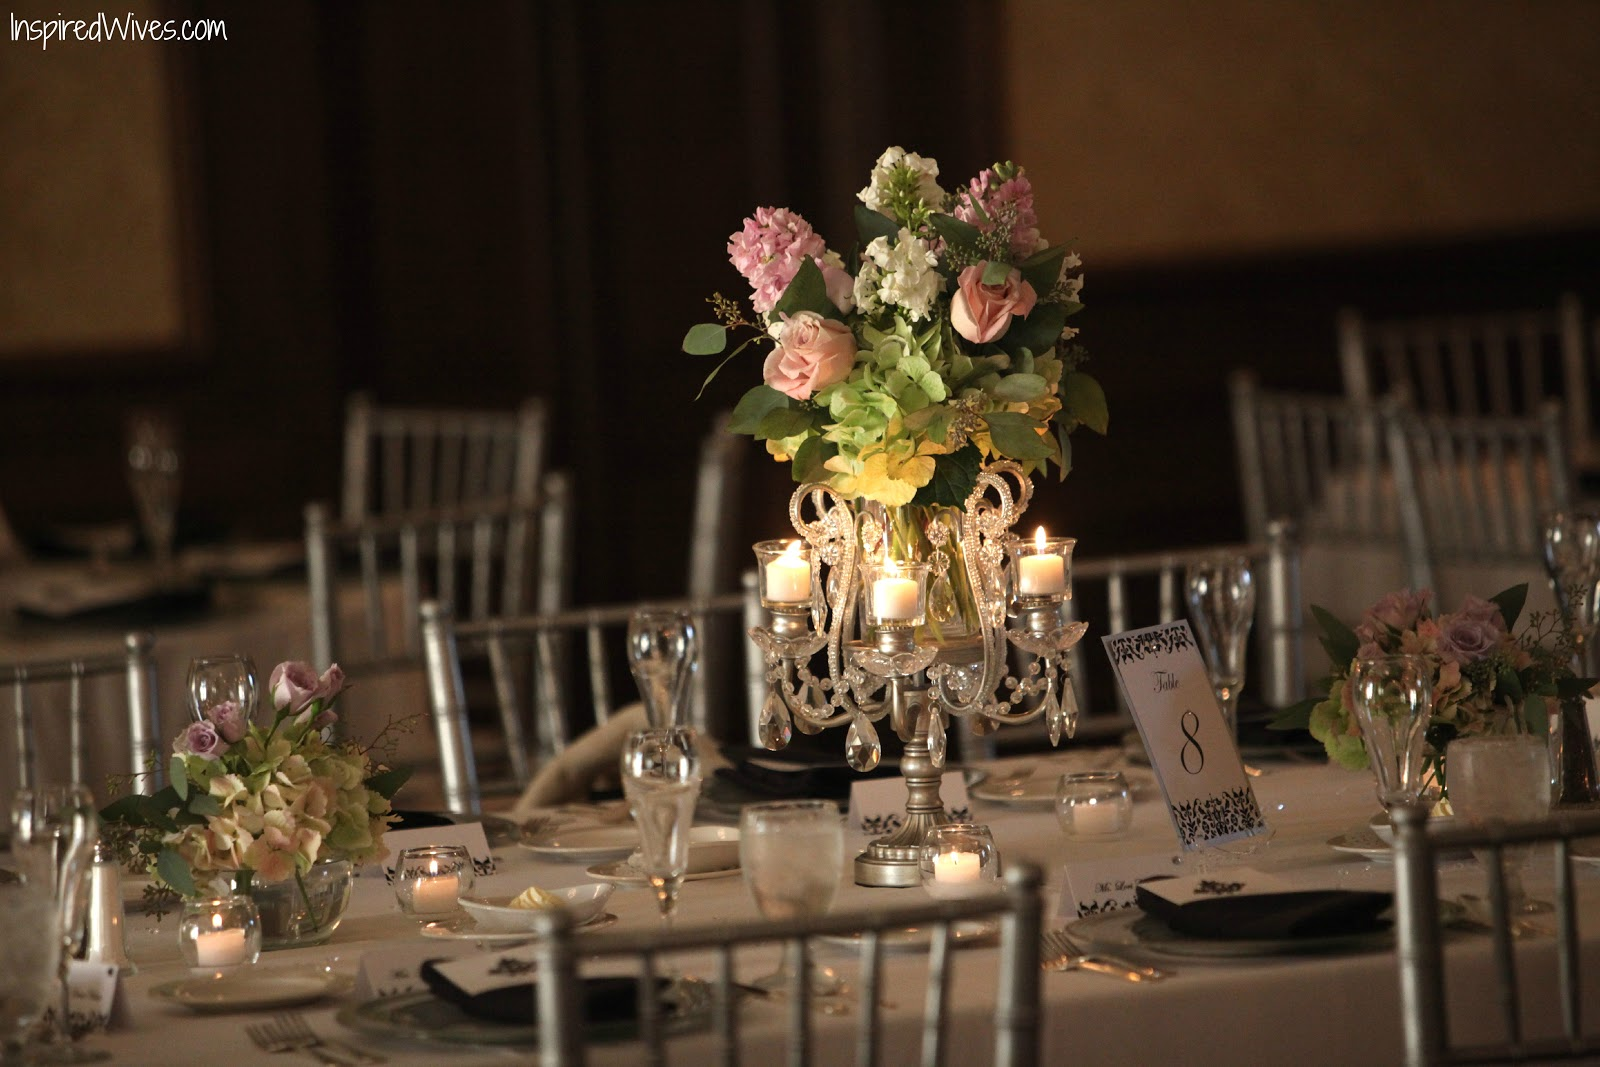 Inspired i dos candelabra wedding centerpieces for Centerpiece arrangements for weddings